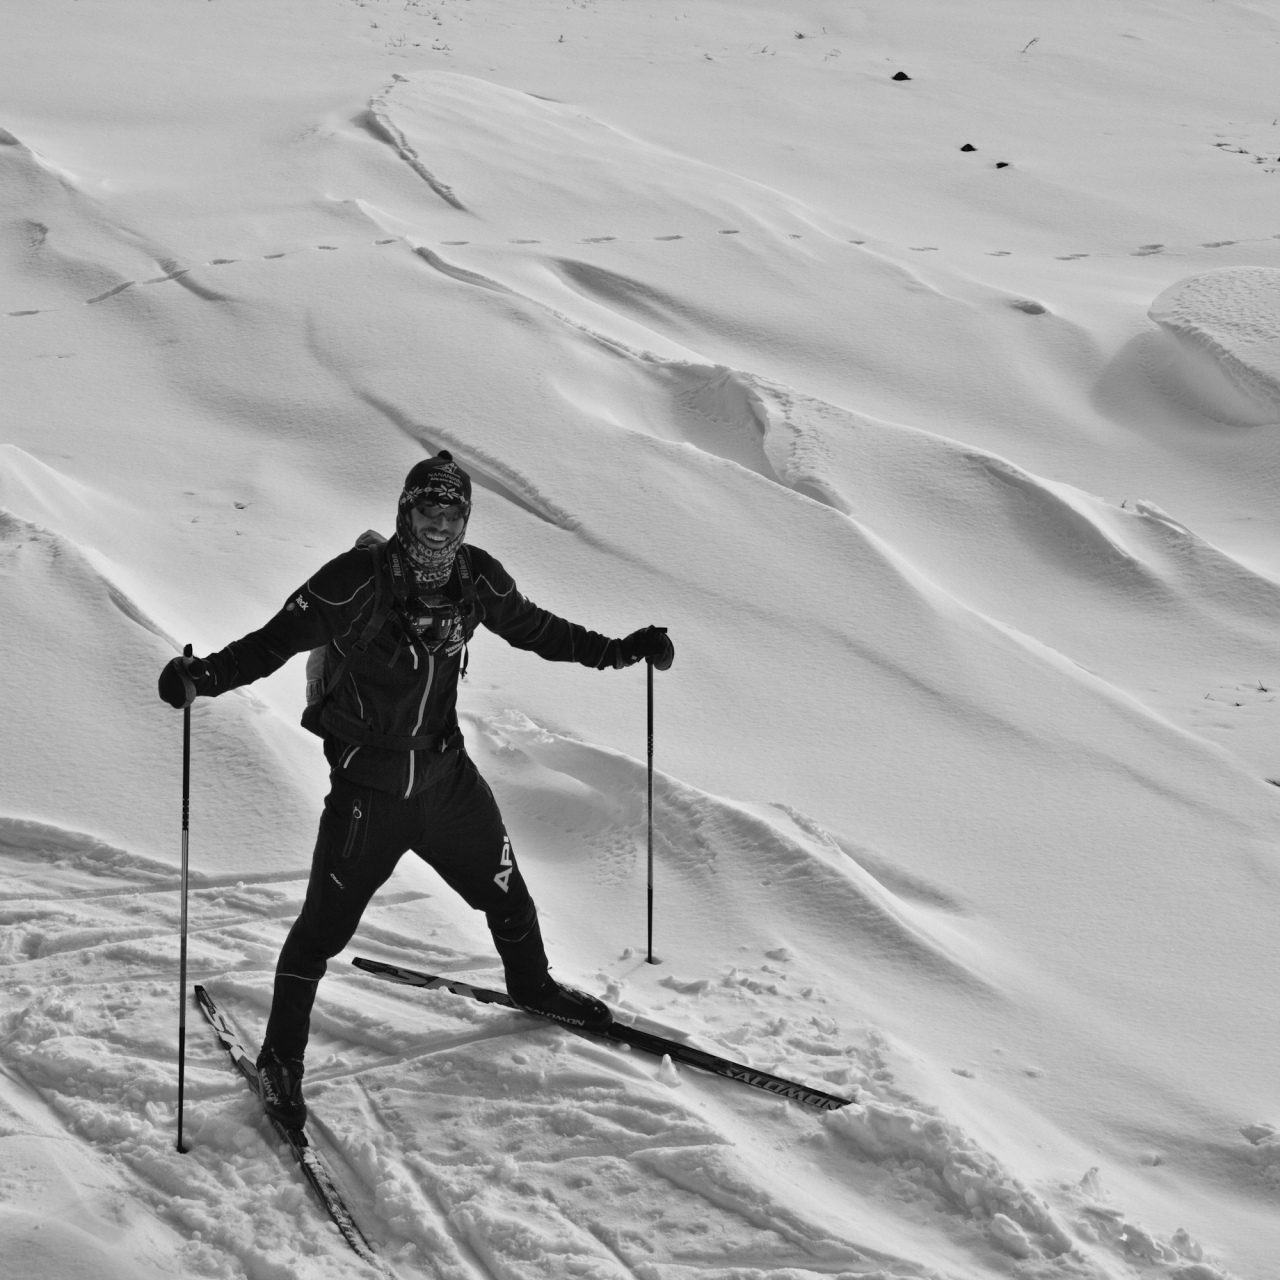 Galen near the top of the ski.